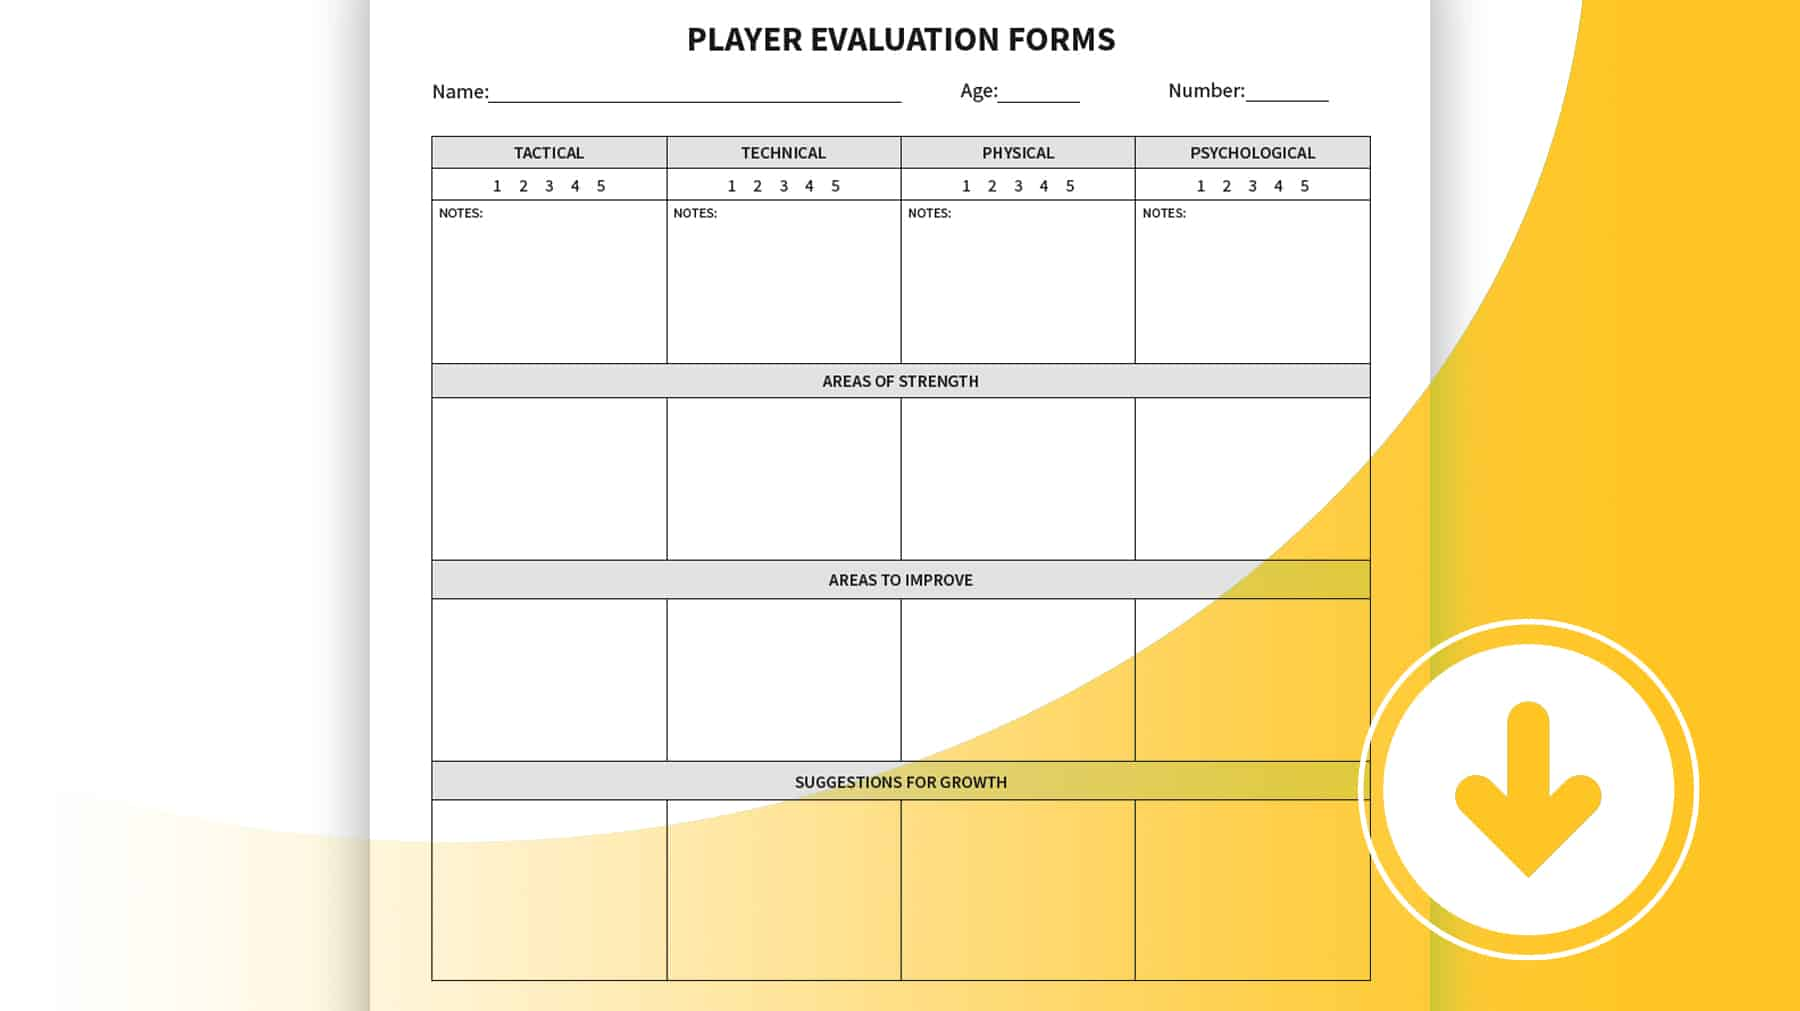 Player Evaluation Forms